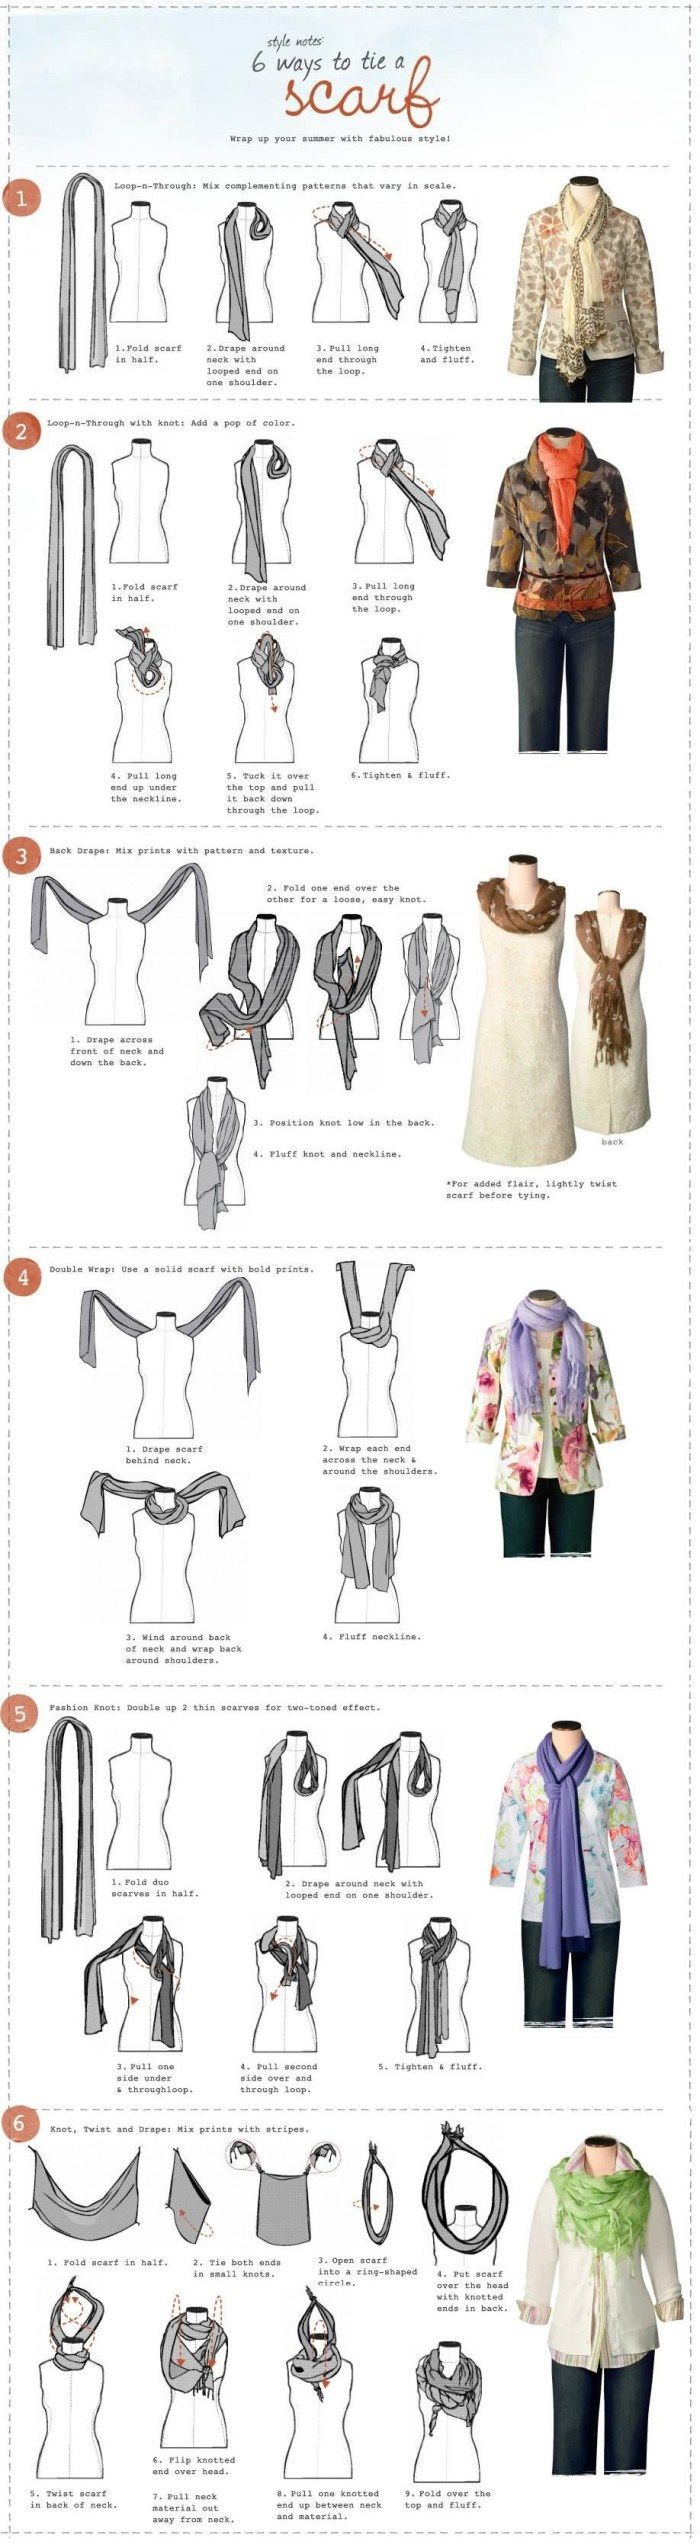 "How to Tie a Scarf (and 20 other ""incredibly important diagrams to help you get through life"")"